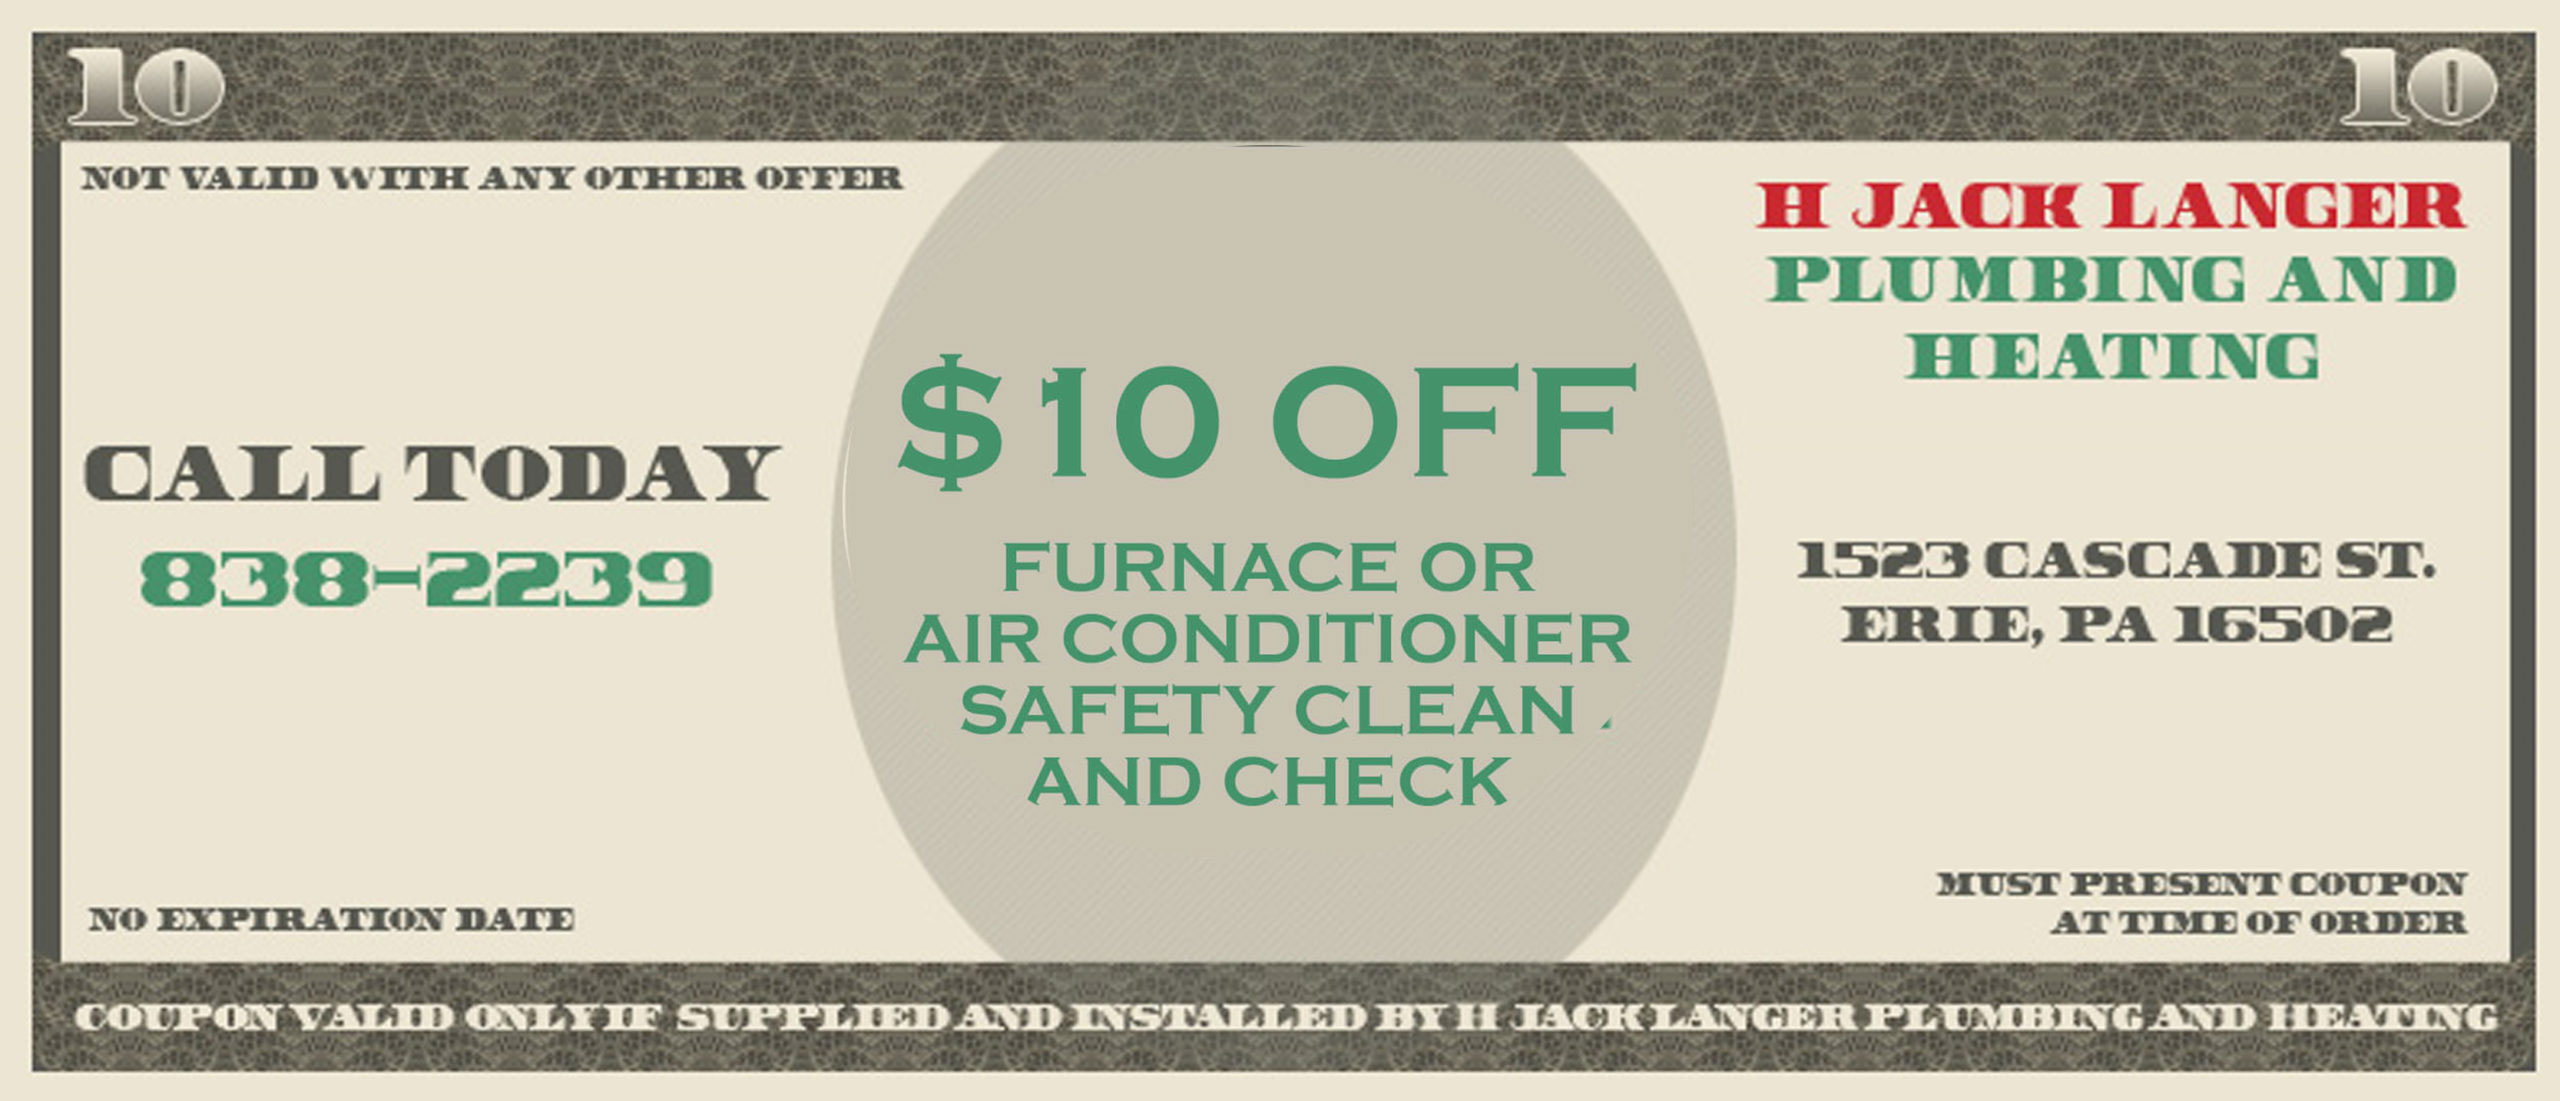 $10 Off Furnace Safety Clean and Check